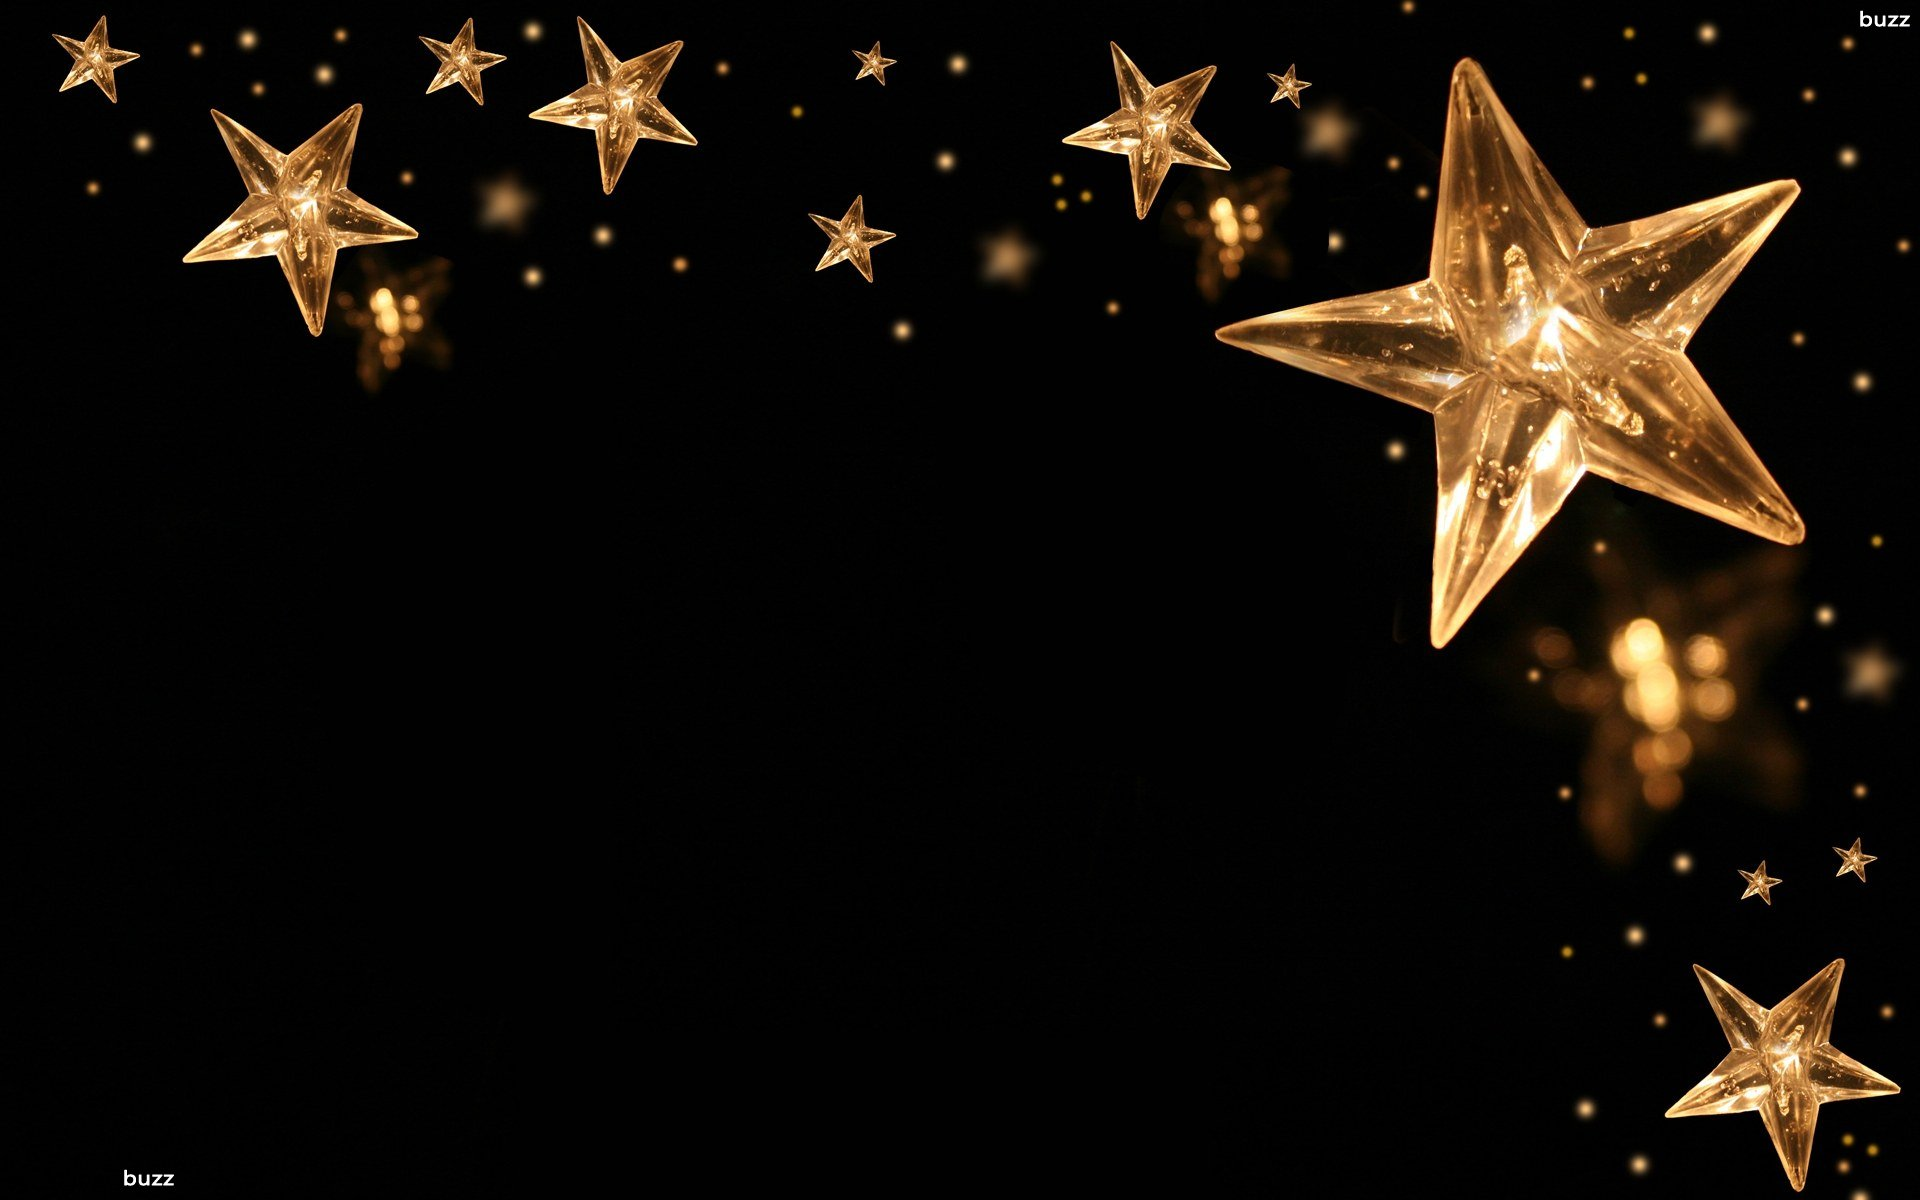 Star Wallpaper 1837 Hd Wallpapers in Space - Imagesci.com